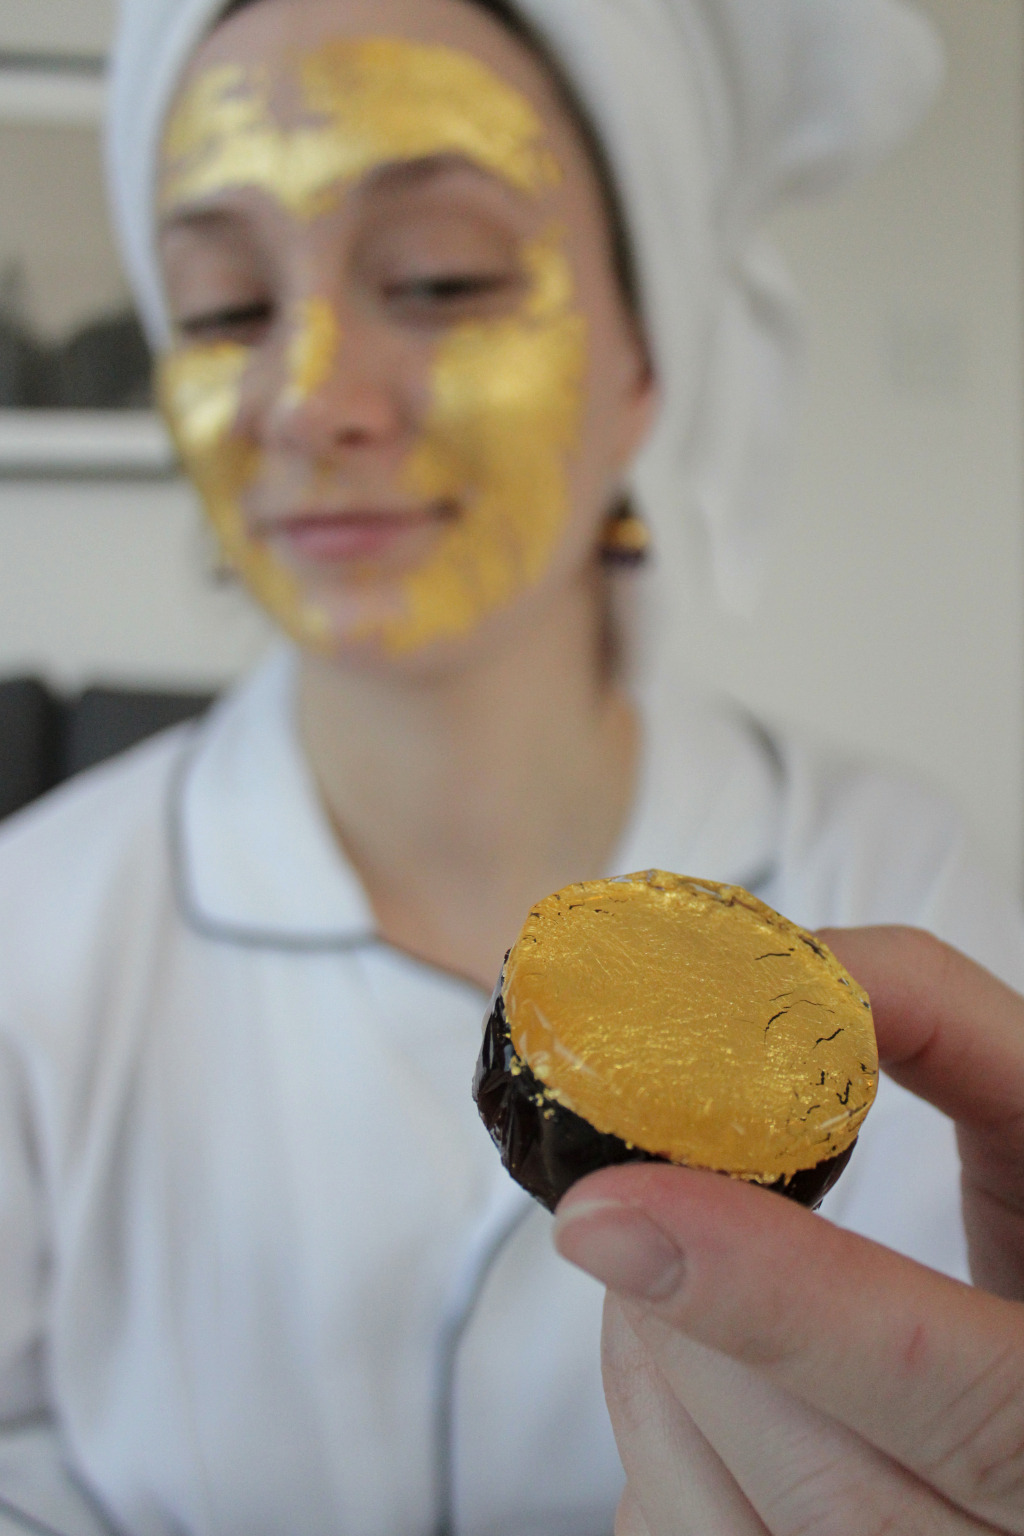 Jess tries the jelly gold medallion